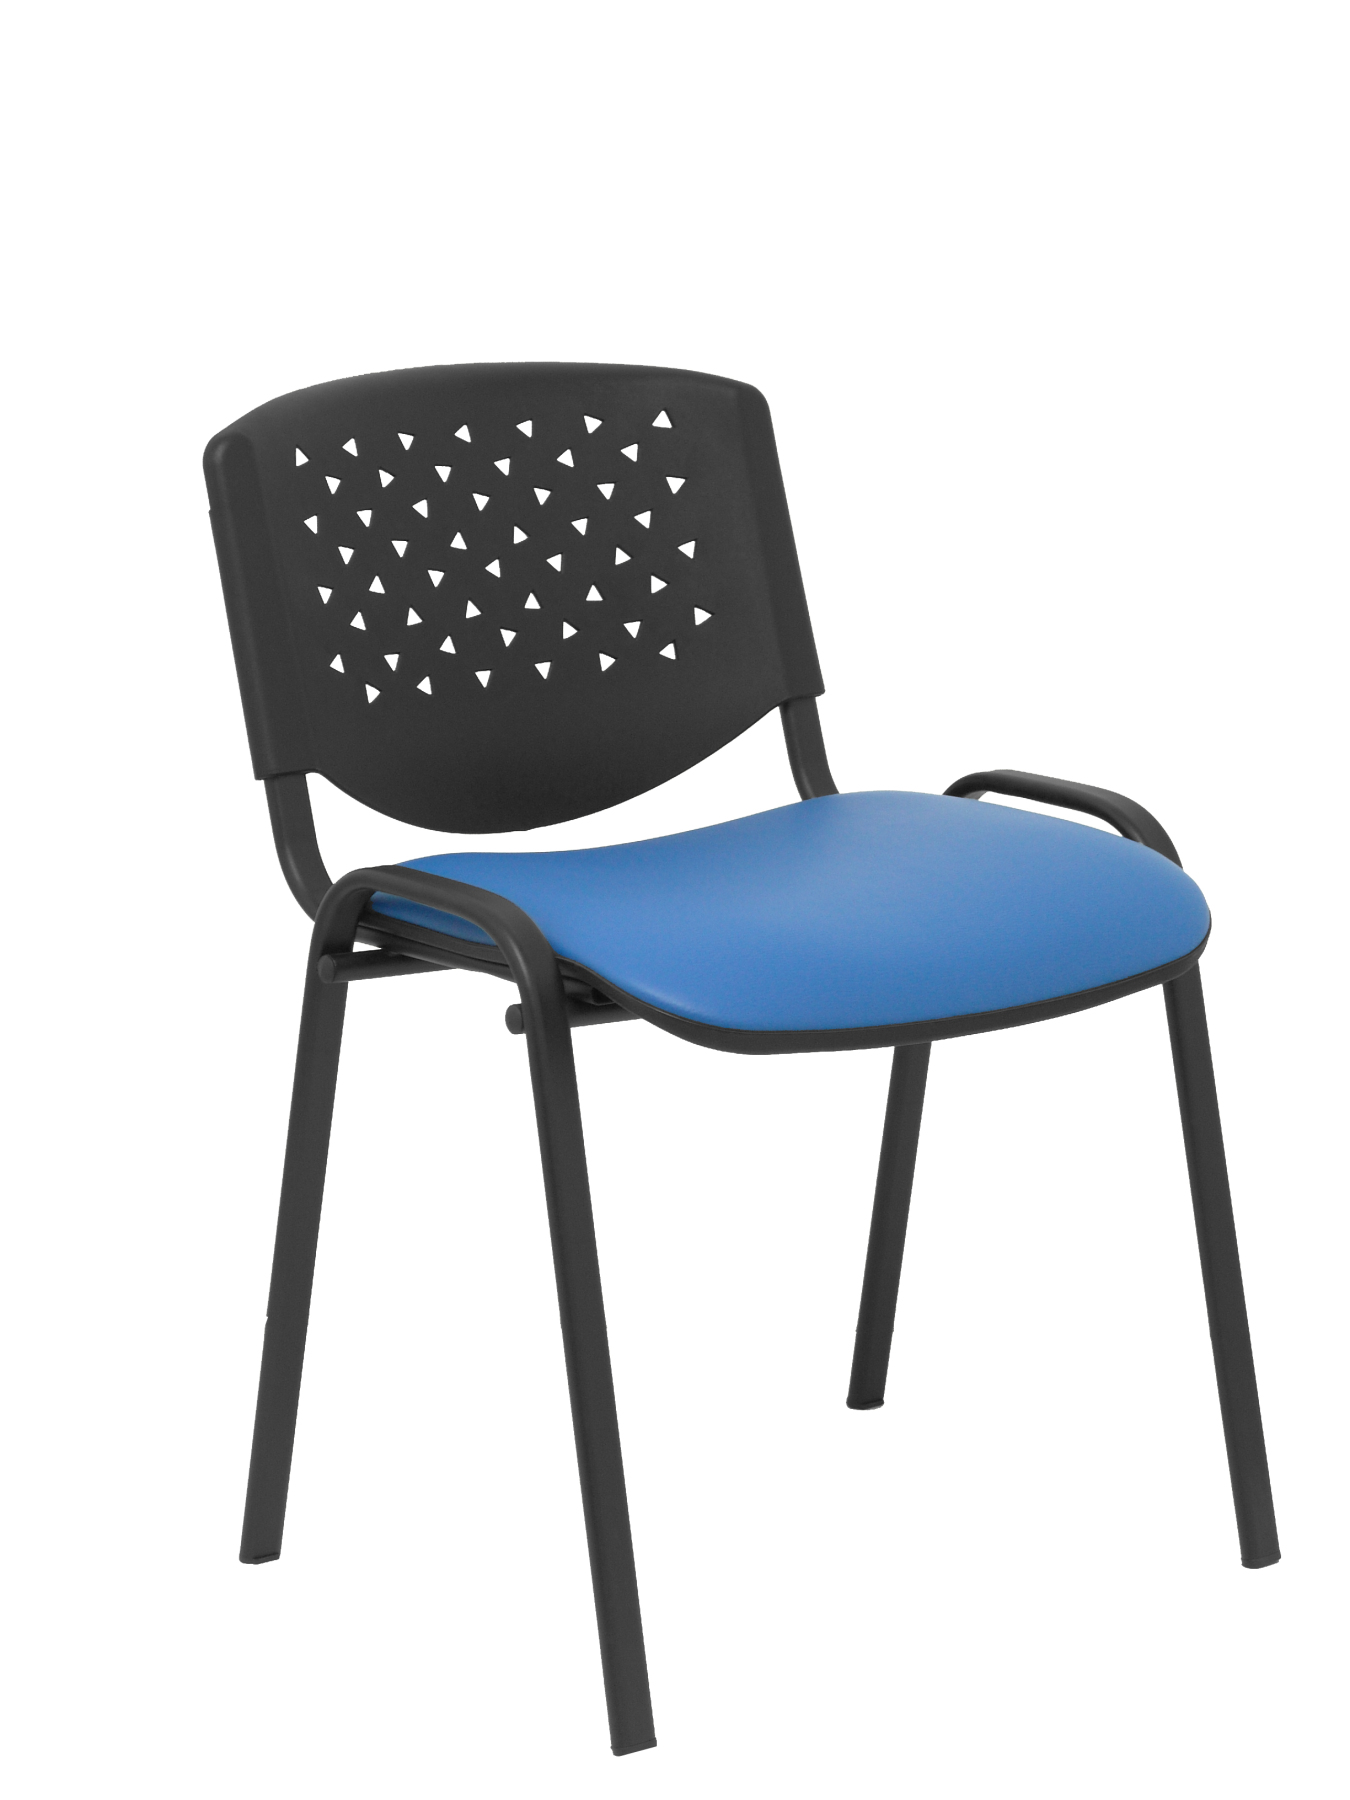 Pack 4 Confident Chairs Ergonomic, Stackable, Multi-purpose And Structure In Black Color PVC Backing Black And So